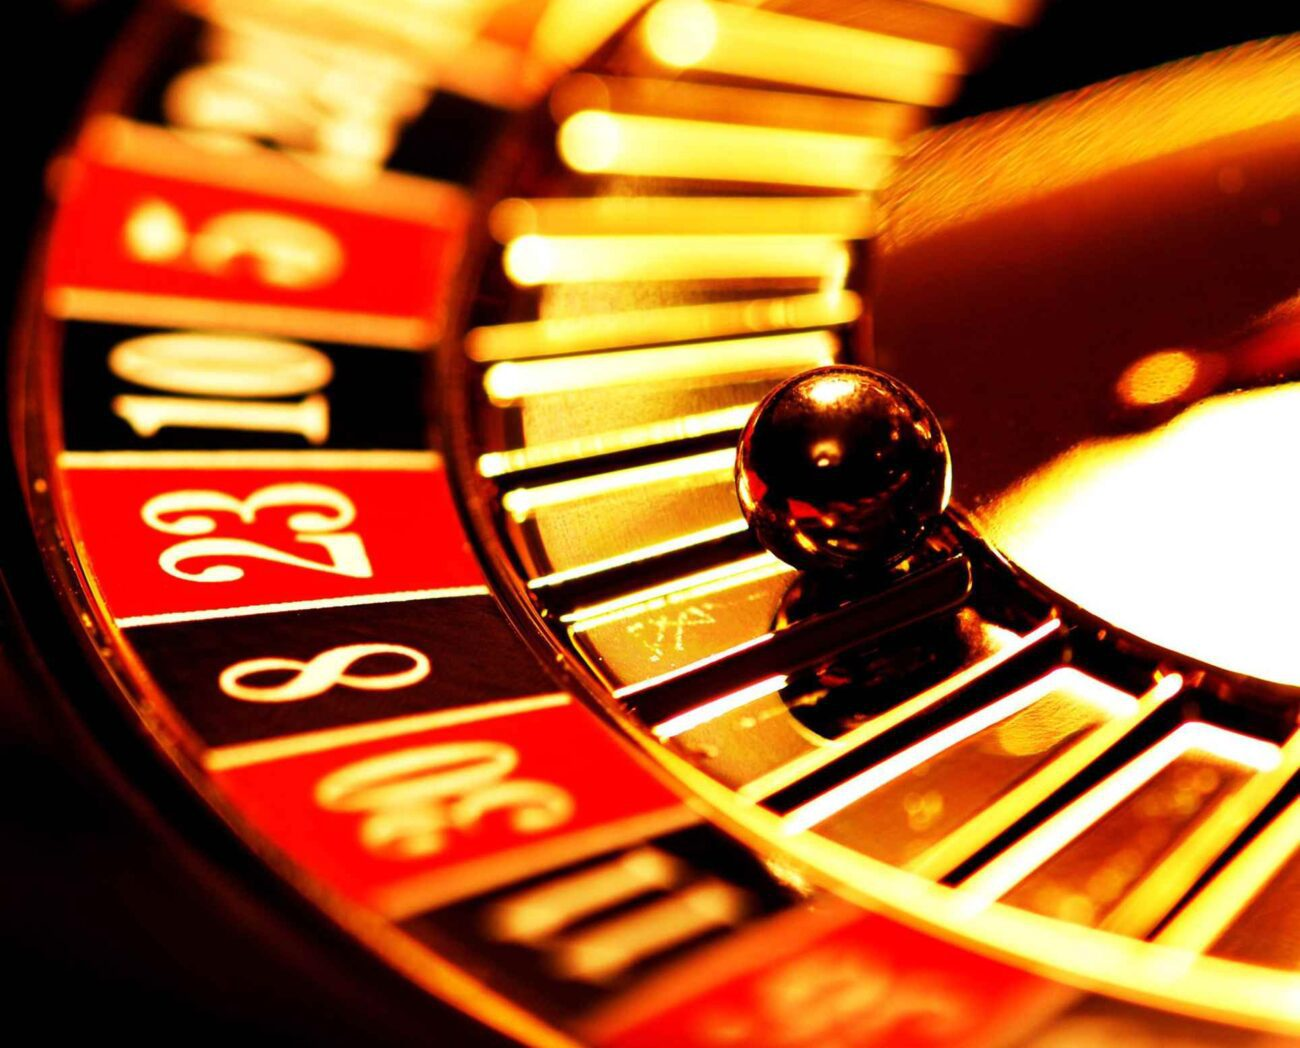 There's more that goes into successful gambling than just luck. Learn about the different casino rewards you can use to boost your winnings right here.